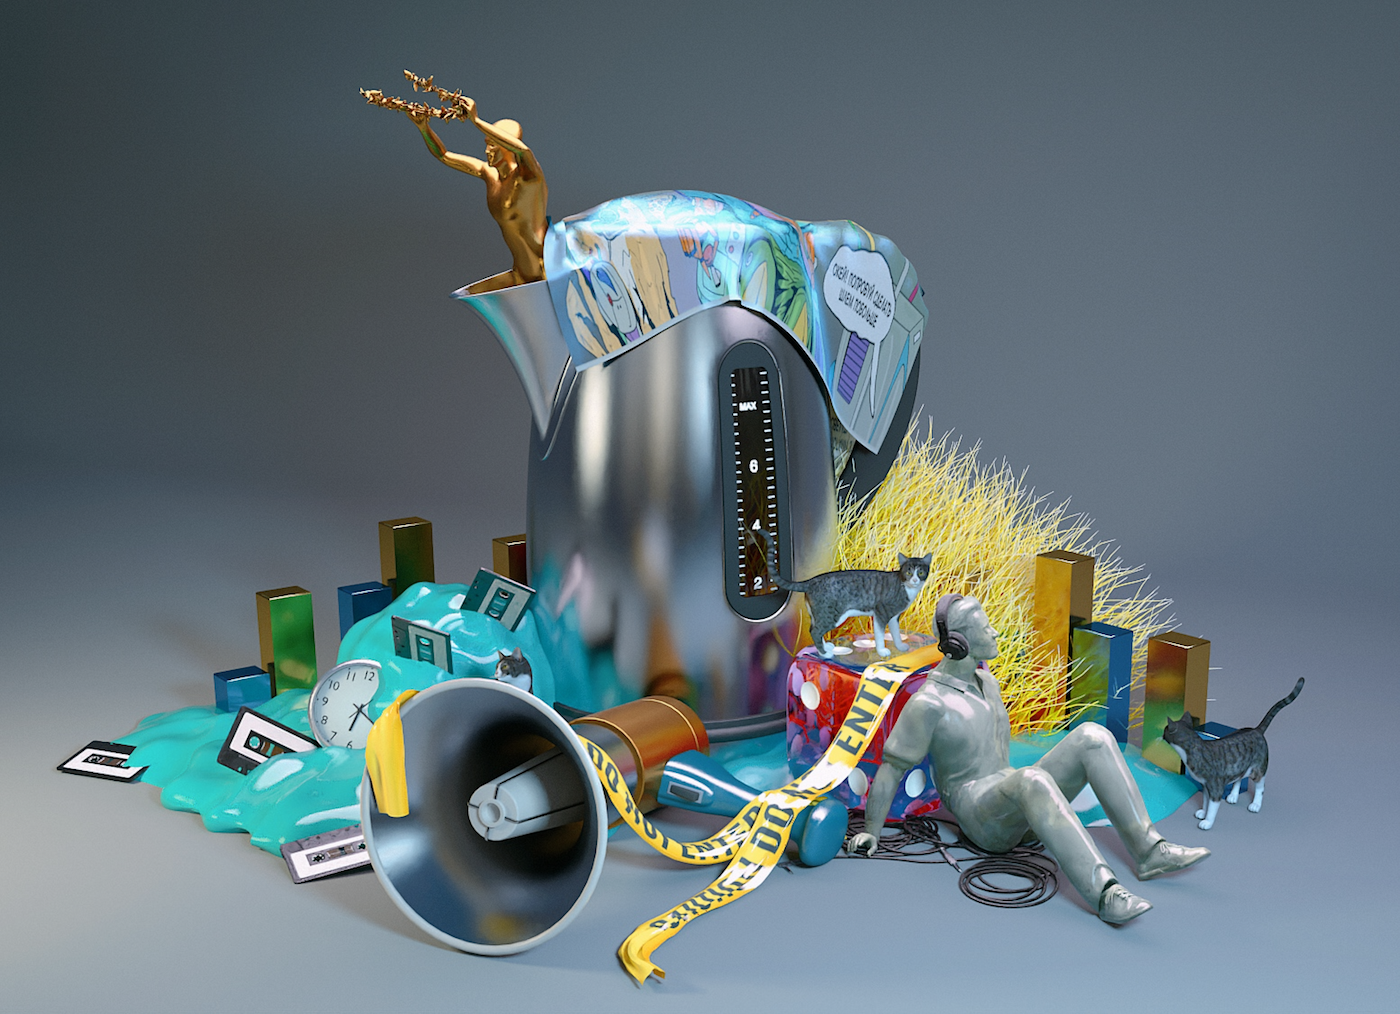 His work is always developing and adapting to the world around him. Today, his depictions mainly draw inspiration from surrealist 3D arrangements with subtle features in homage to renowned artists and movements of the past. (Work: Pixelord)